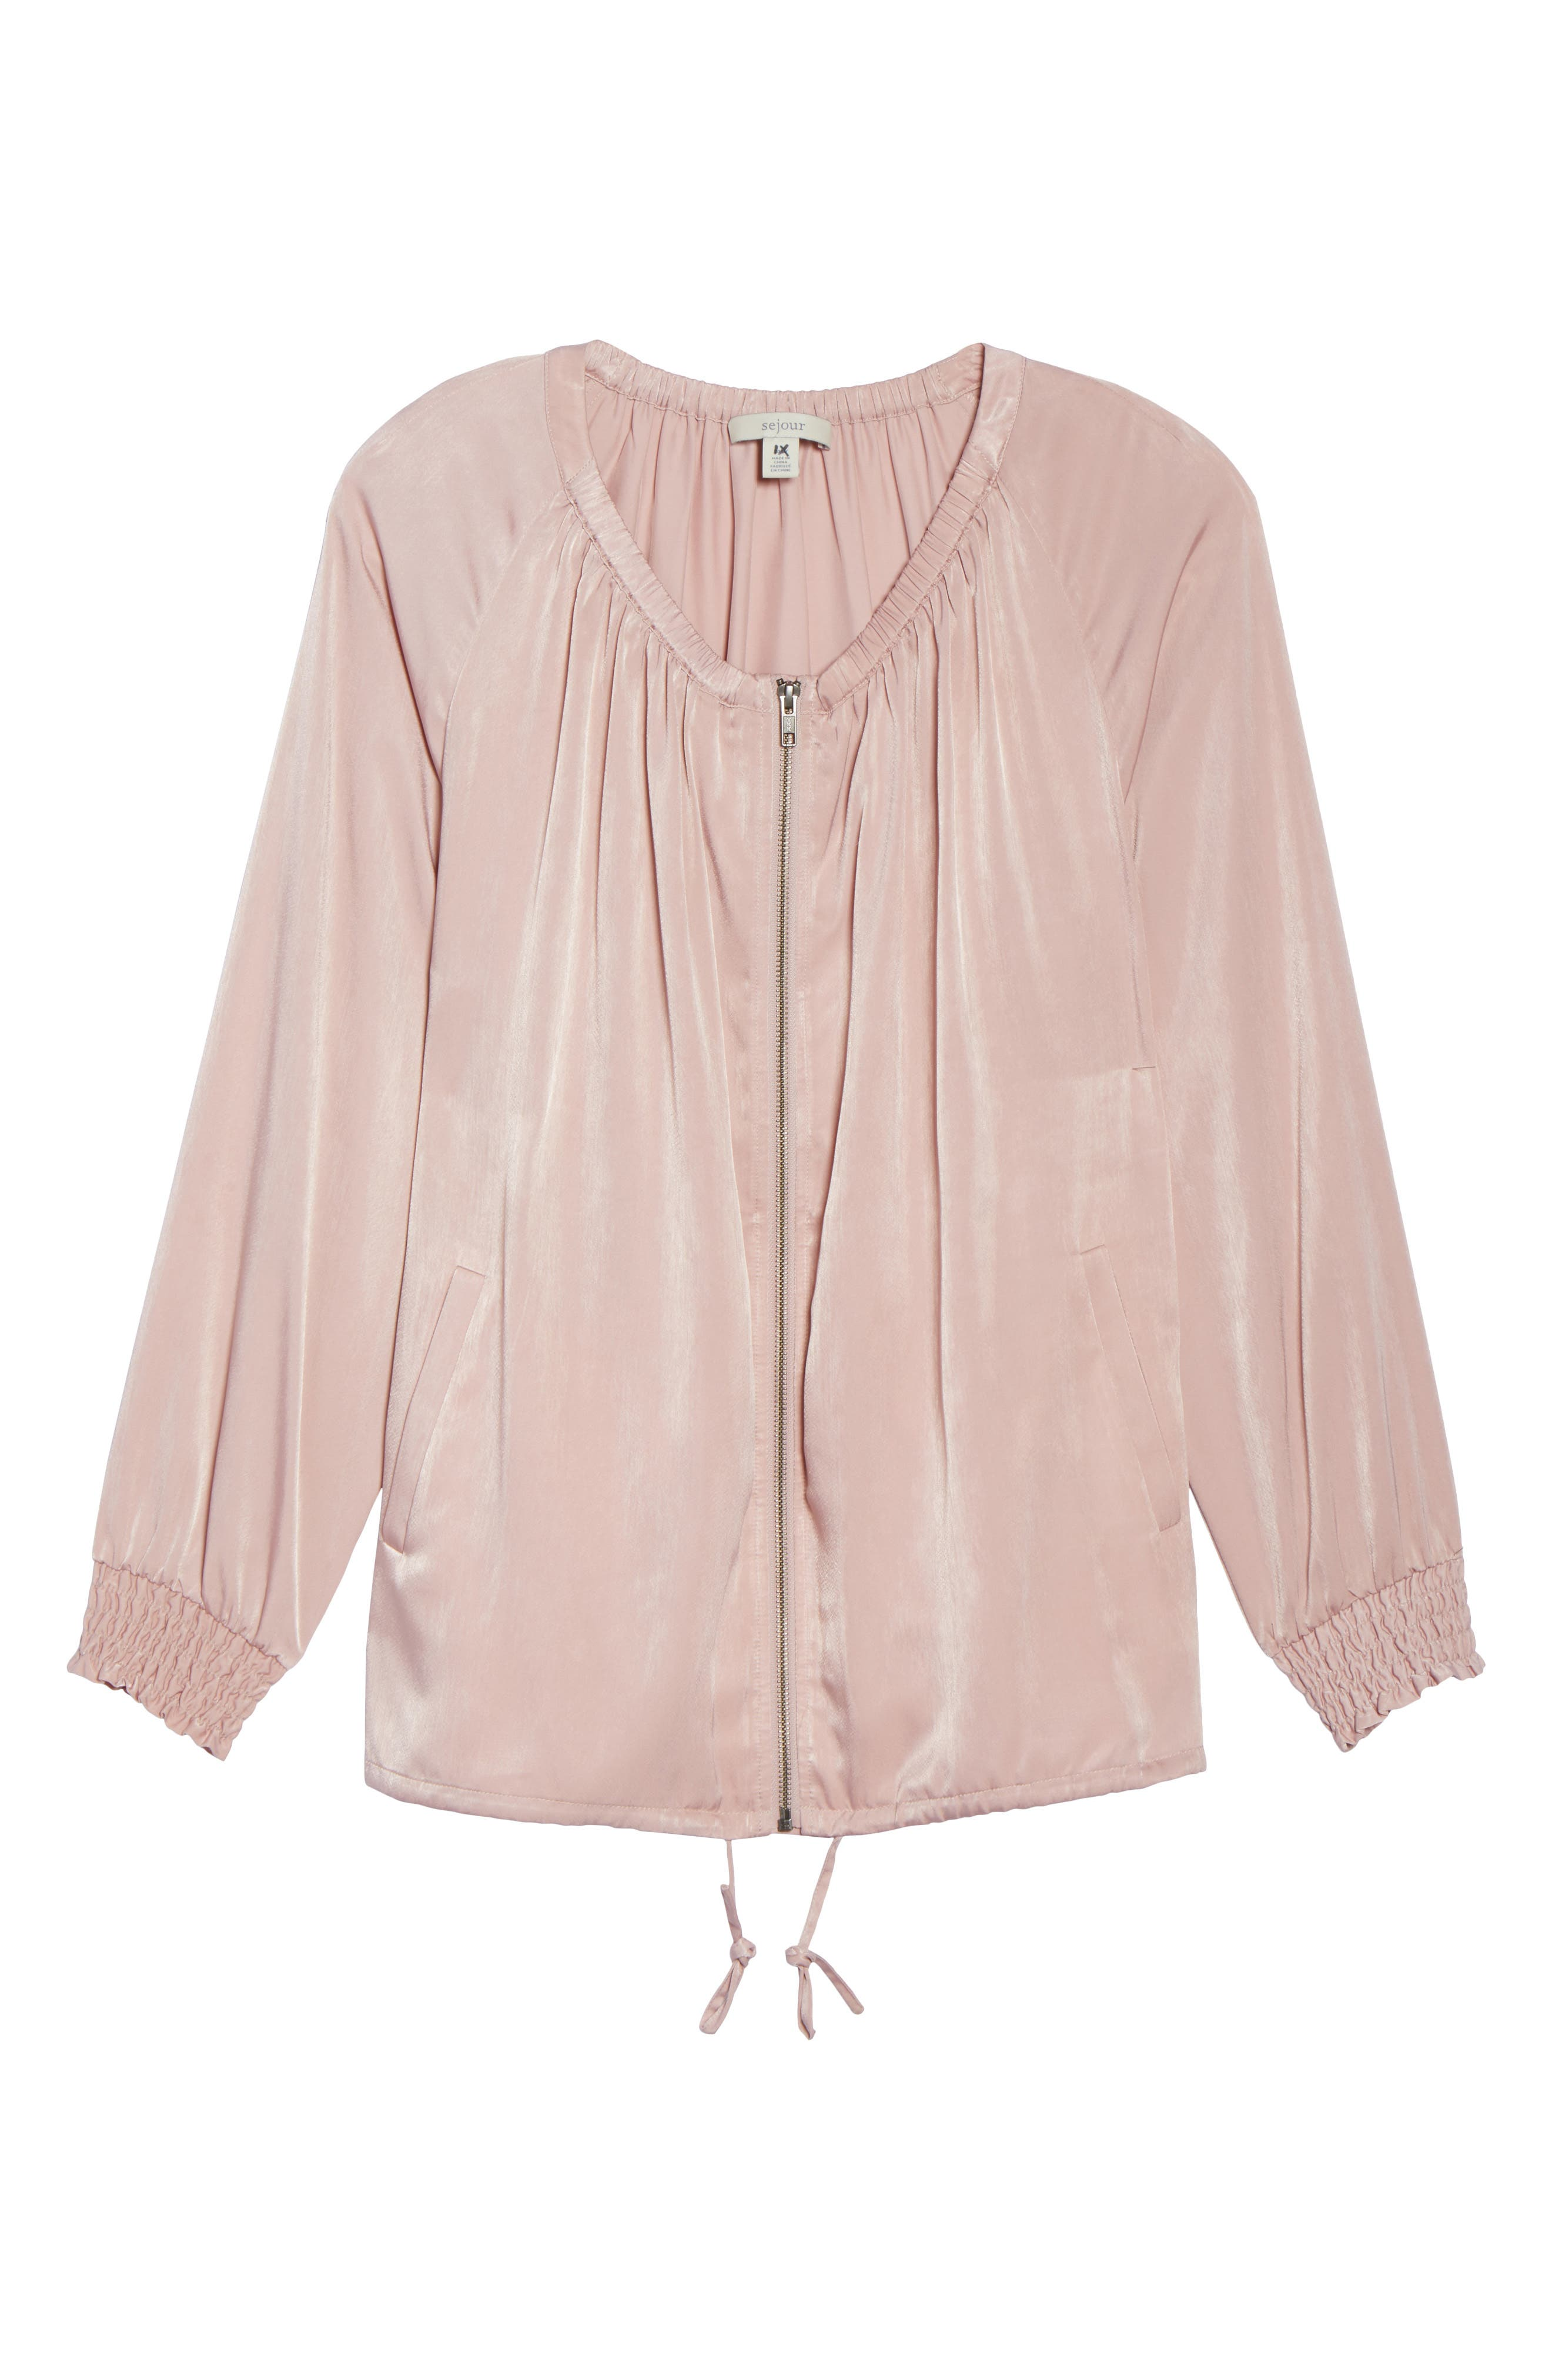 Swing Back Satin Bomber Jacket,                             Alternate thumbnail 6, color,                             Pink Puff